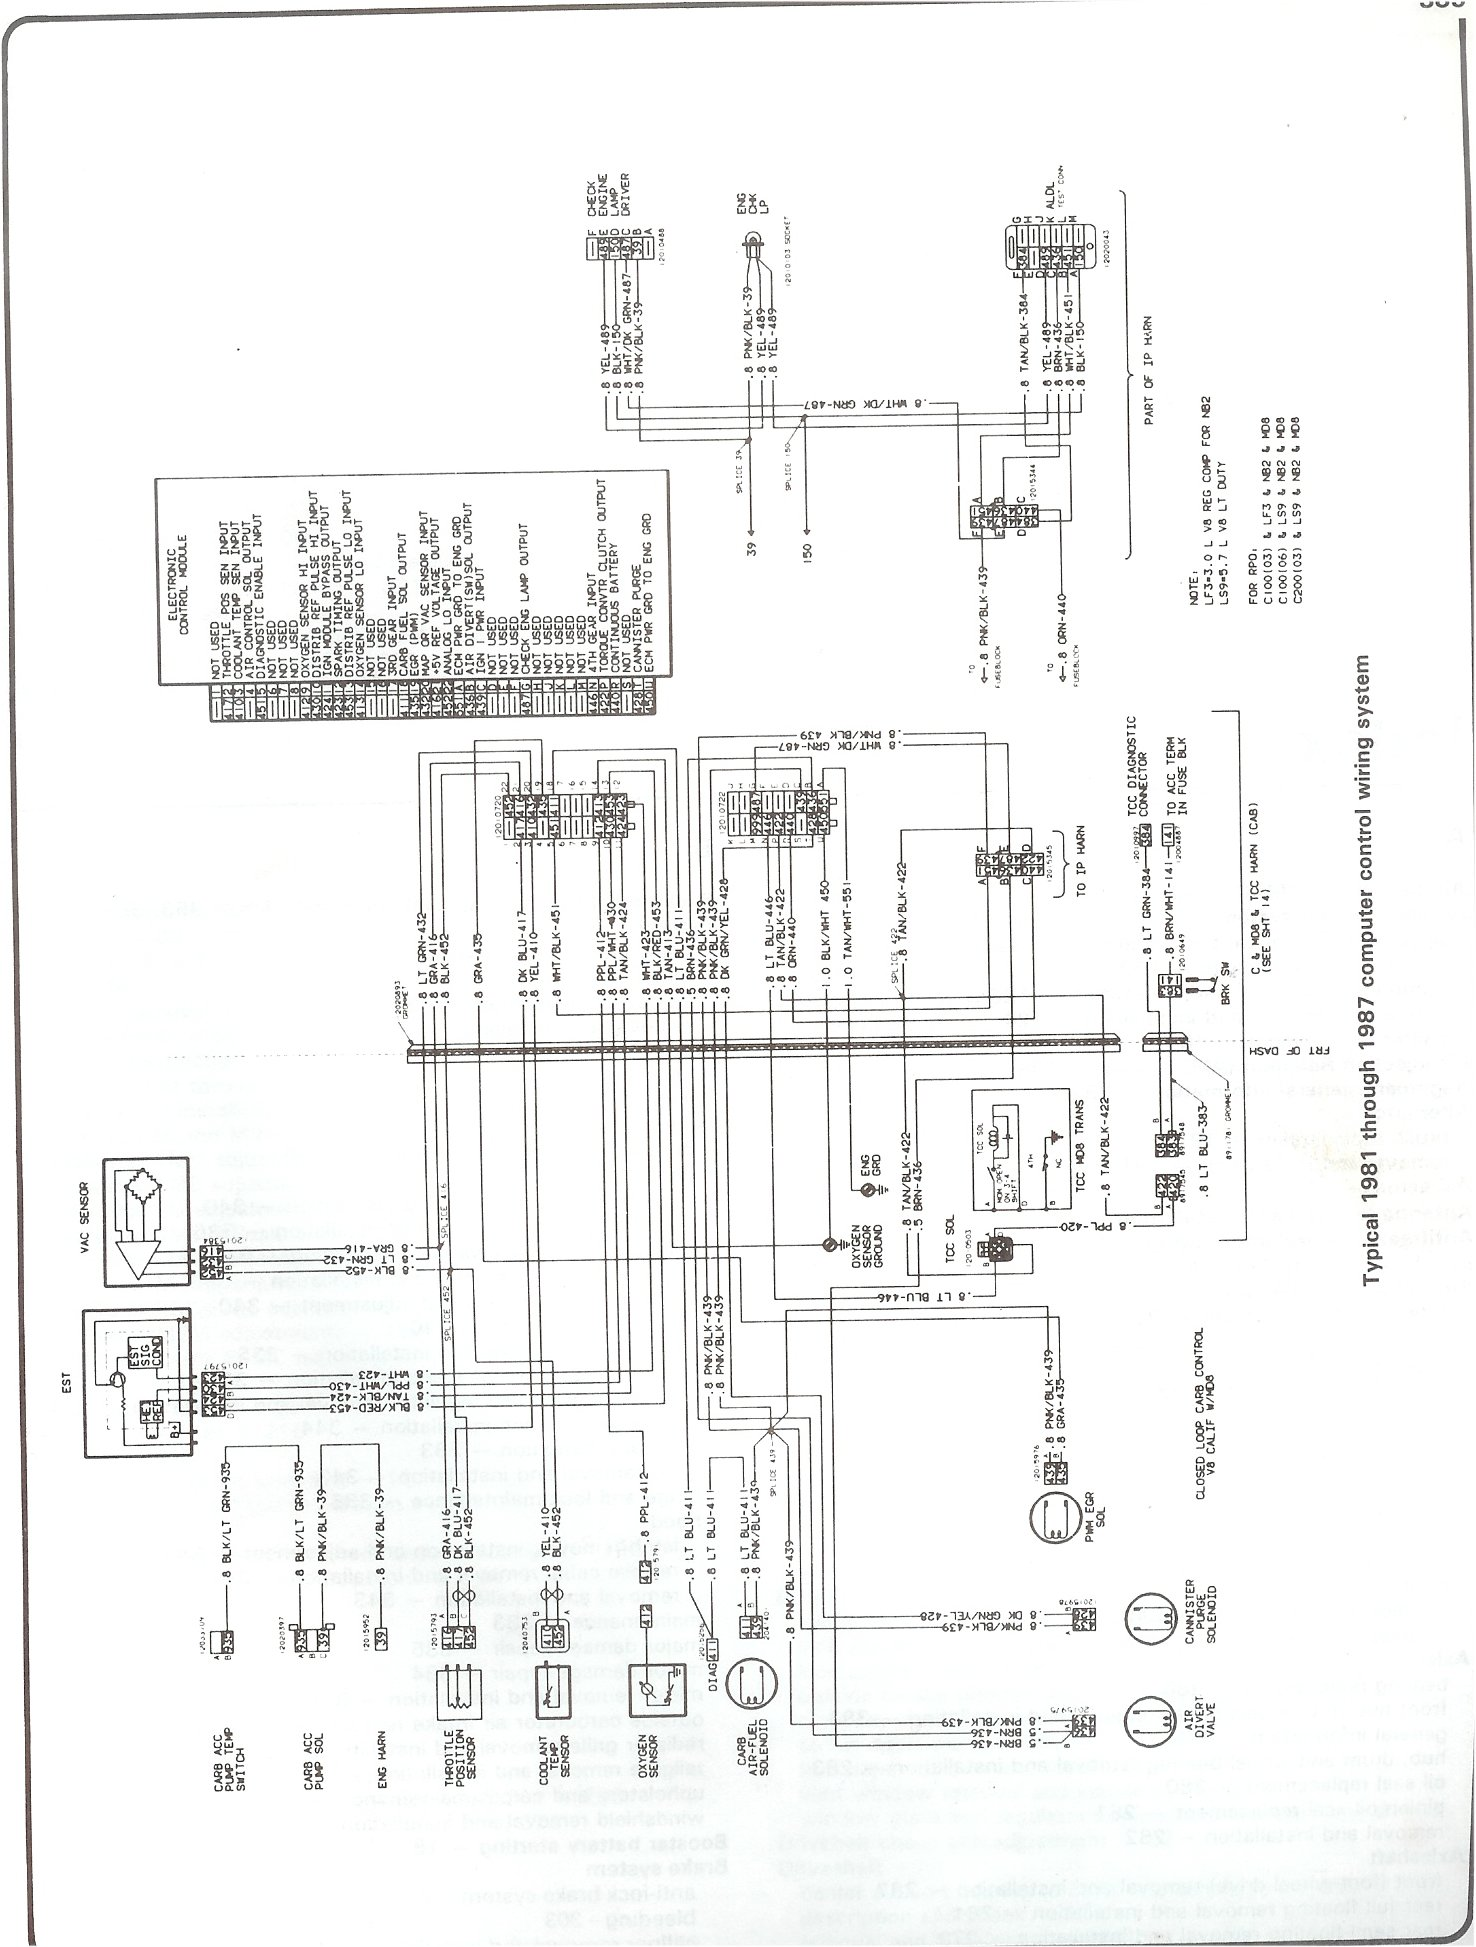 ford e350 ignition switch diagram ford engine image for user ford e350 ignition switch diagram ford engine image for user tundra in